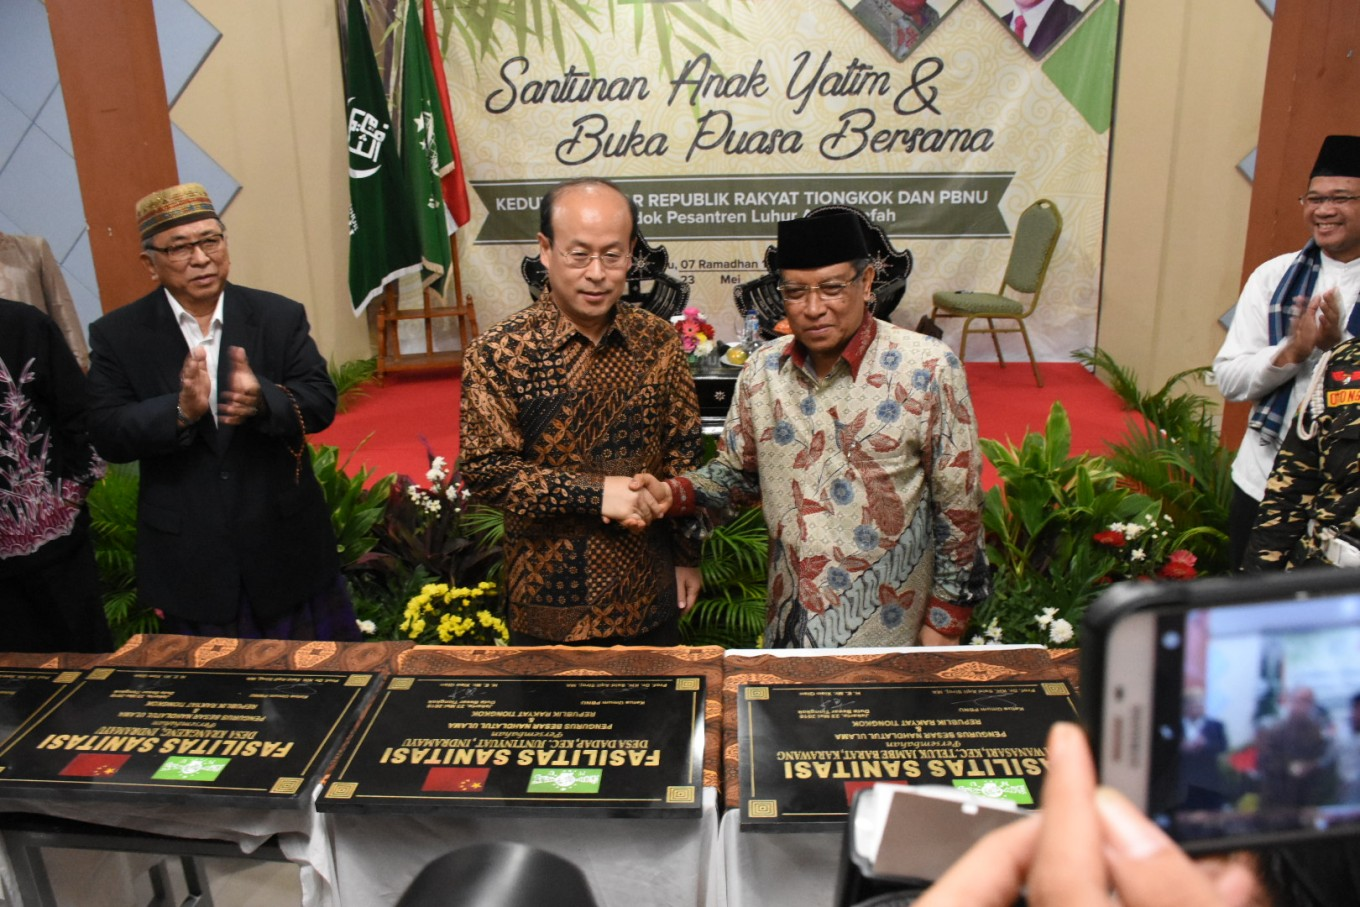 China supports sanitation in West Java